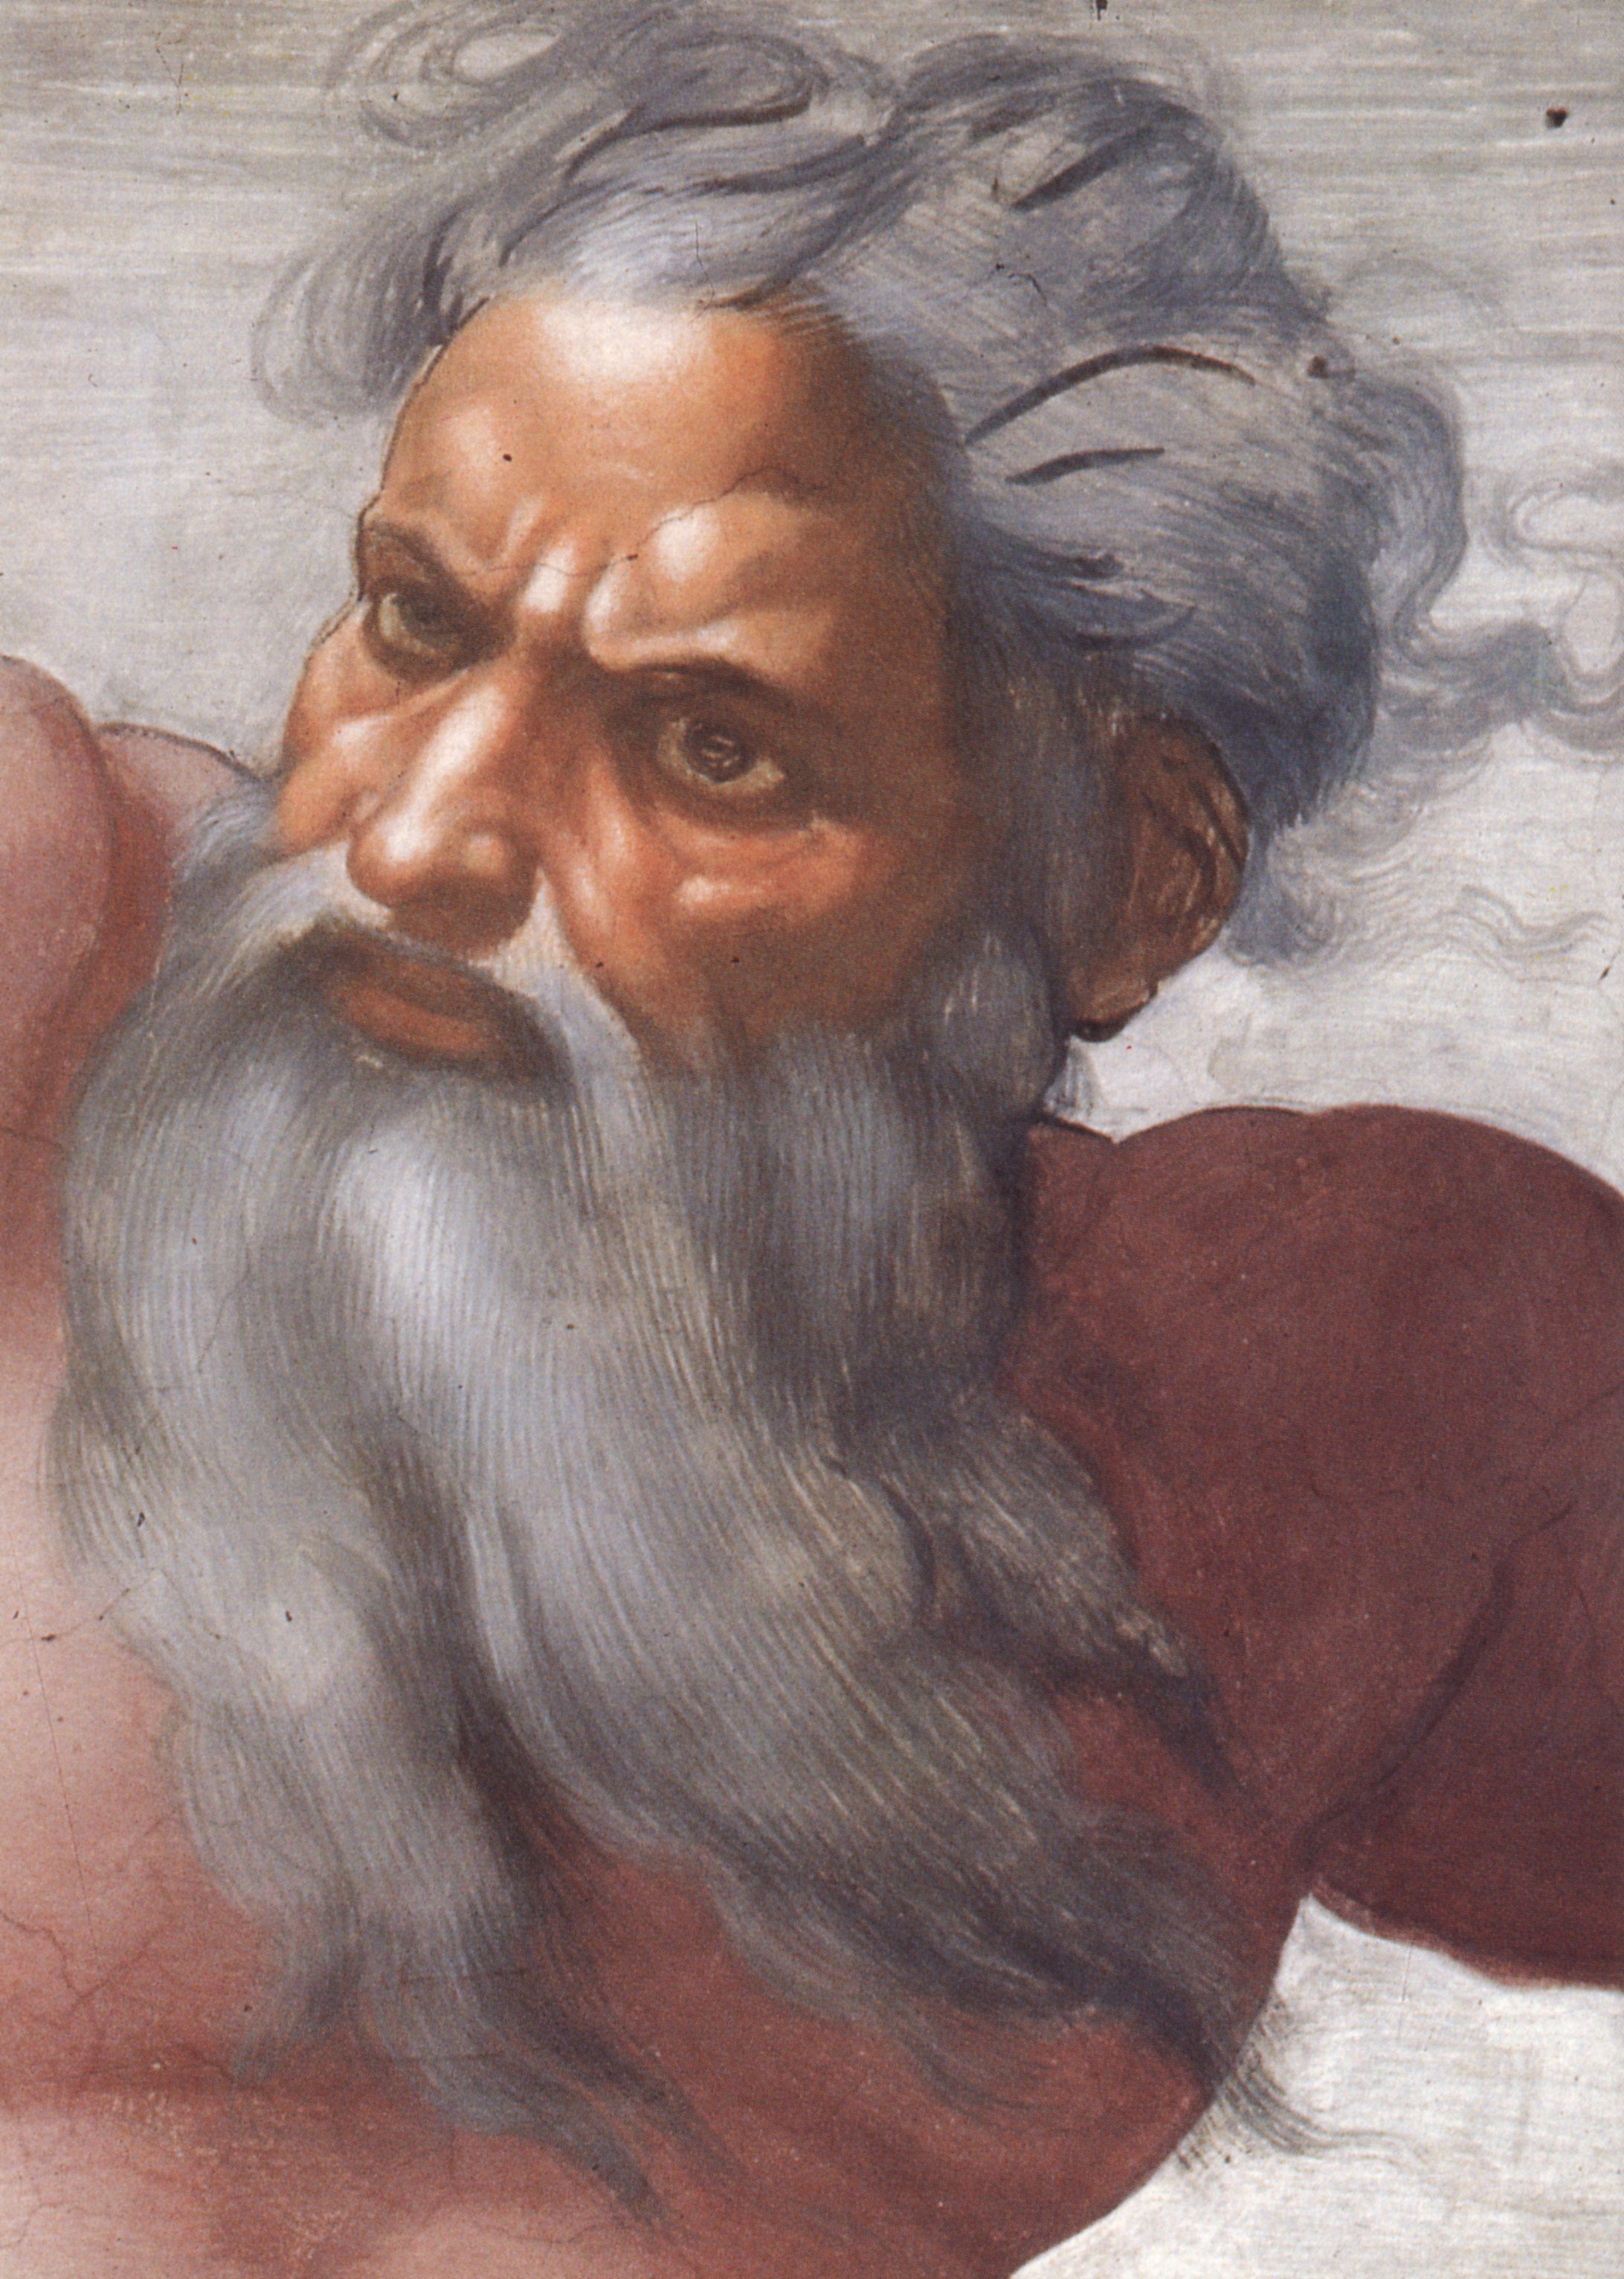 God as envisioned by Michelangelo